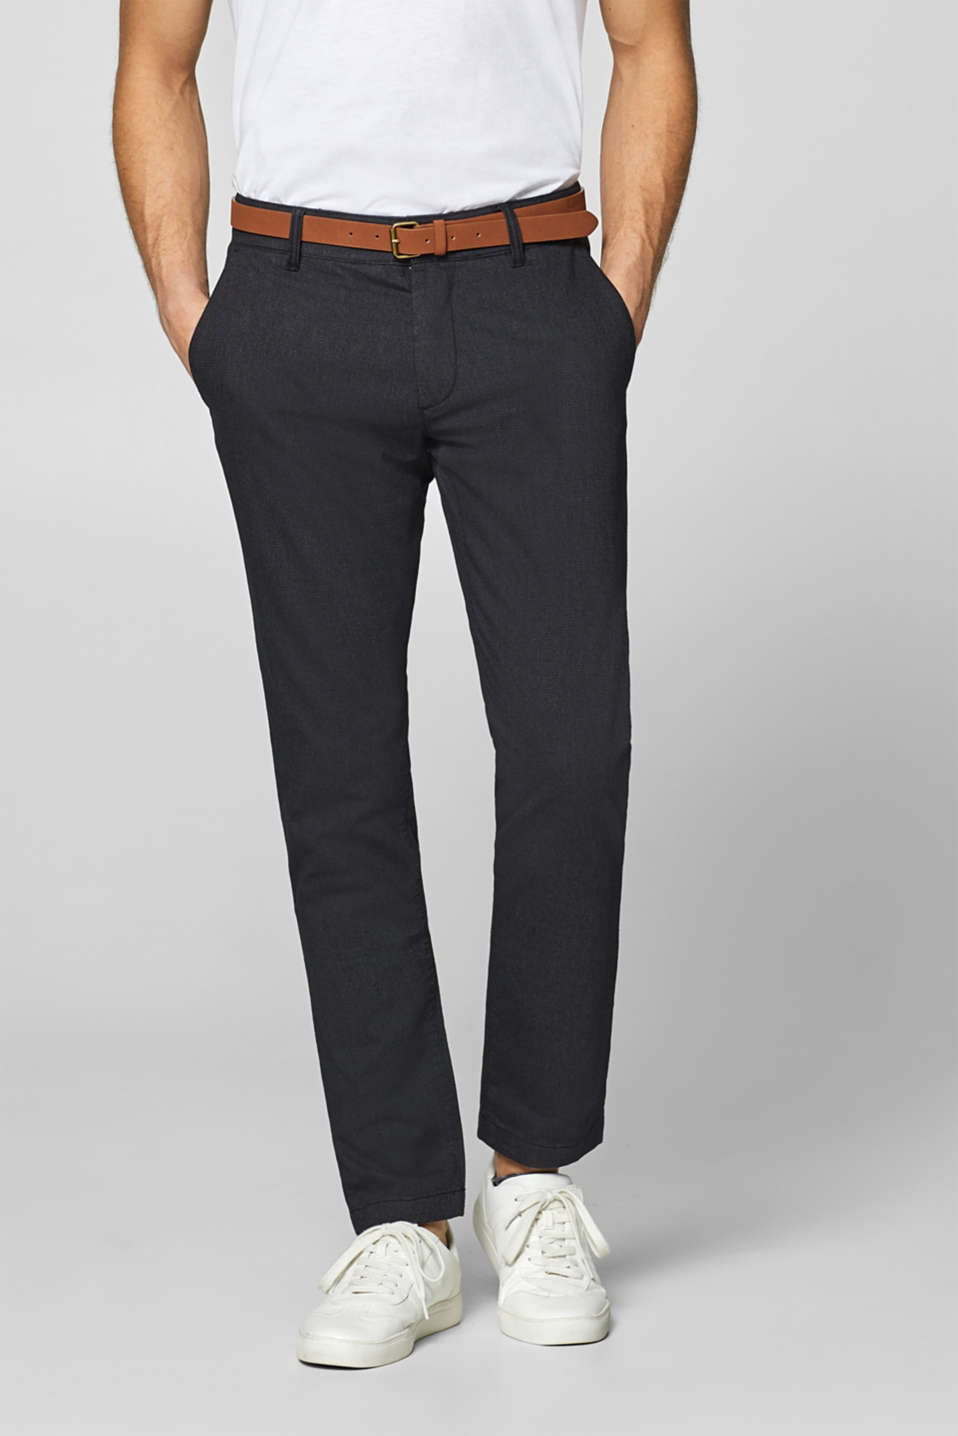 Esprit - Stretch trousers with a fine texture